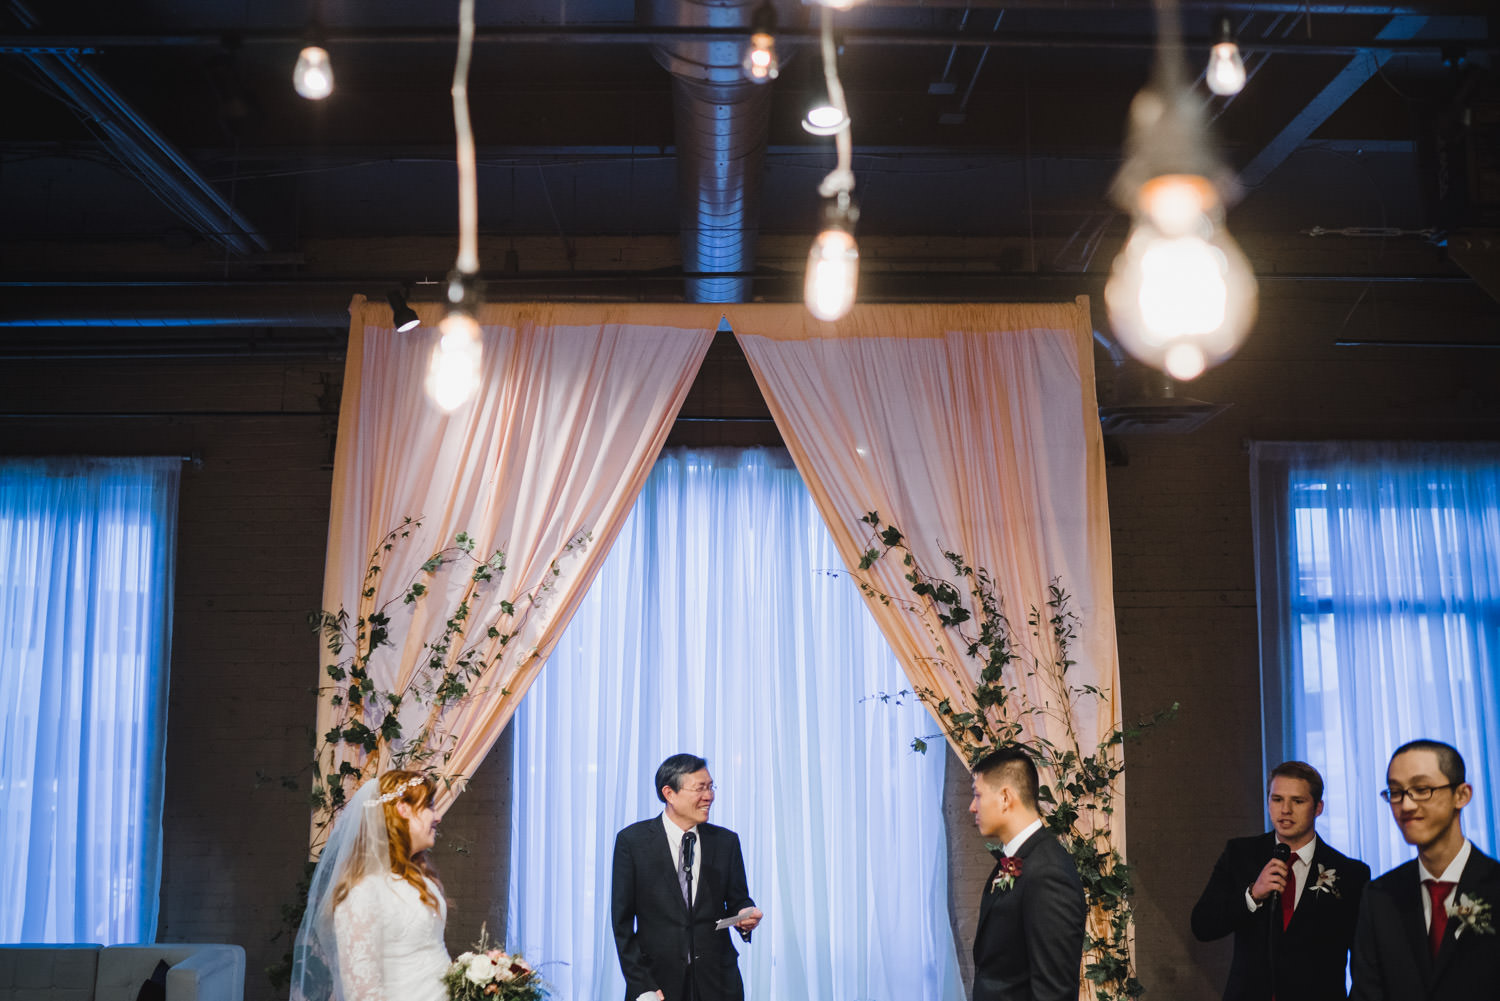 Pierpont Place wedding bride, groom and officiant at ceremony photo